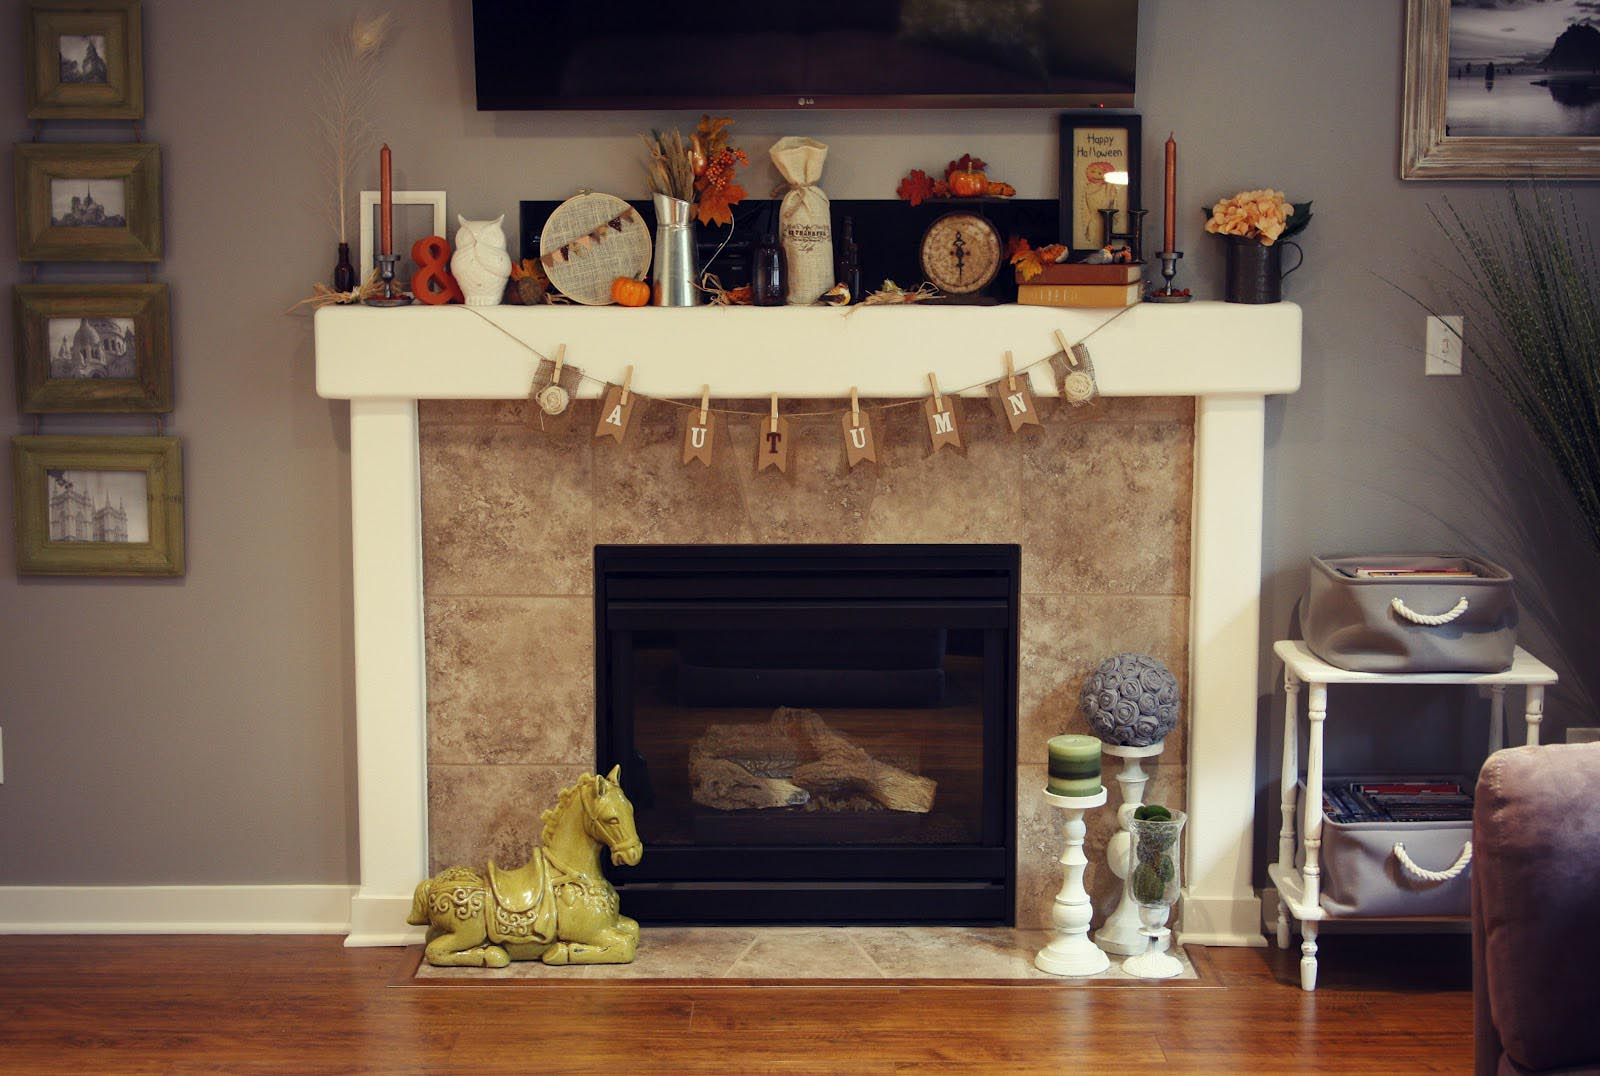 Diy fireplace surround ideas fireplace designs Fireplace surround ideas